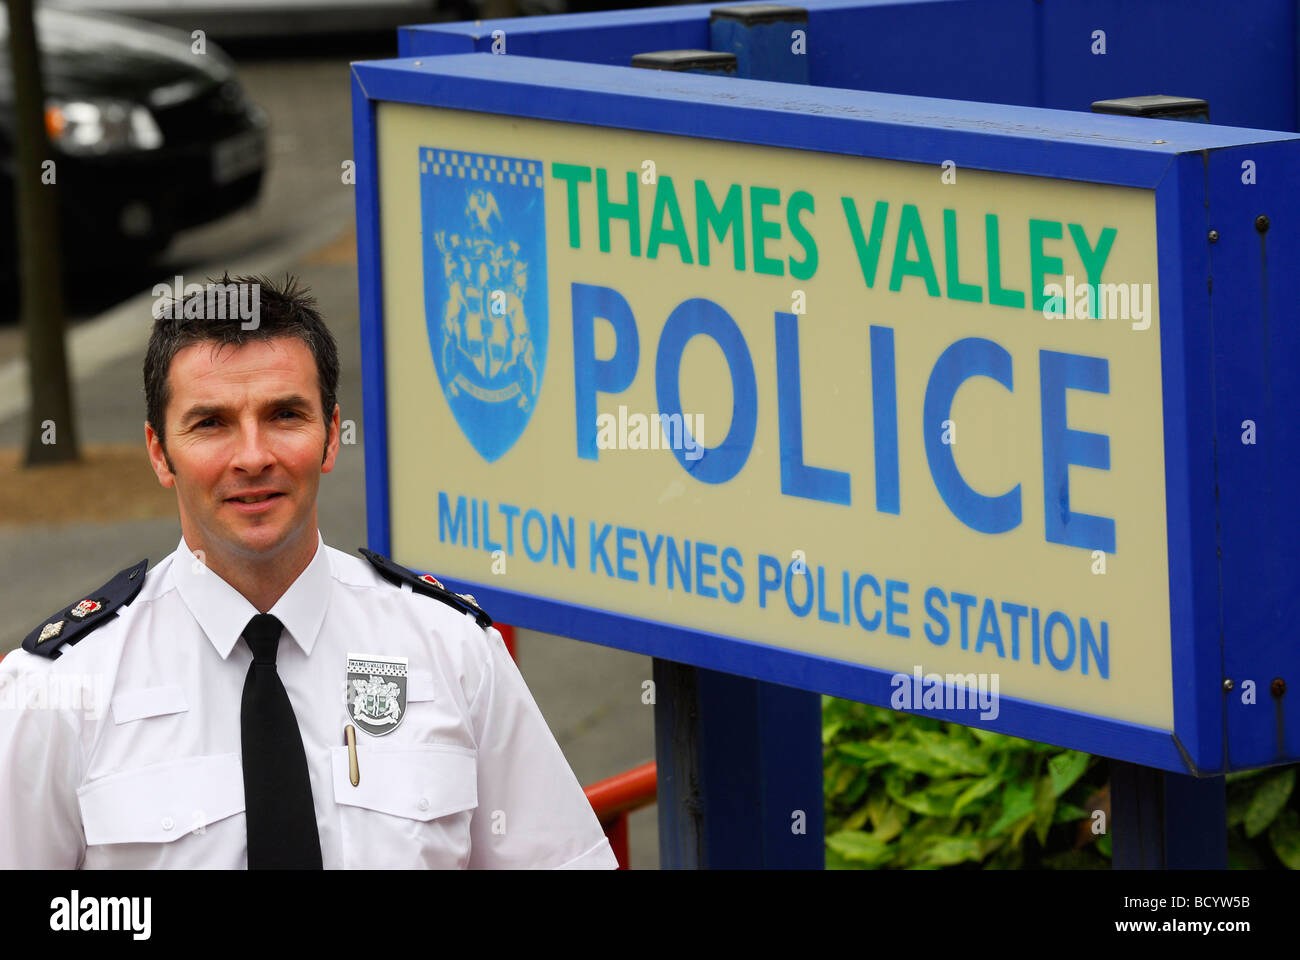 Commander Alan Baldwin of the Thames Valley Police Force - Stock Image